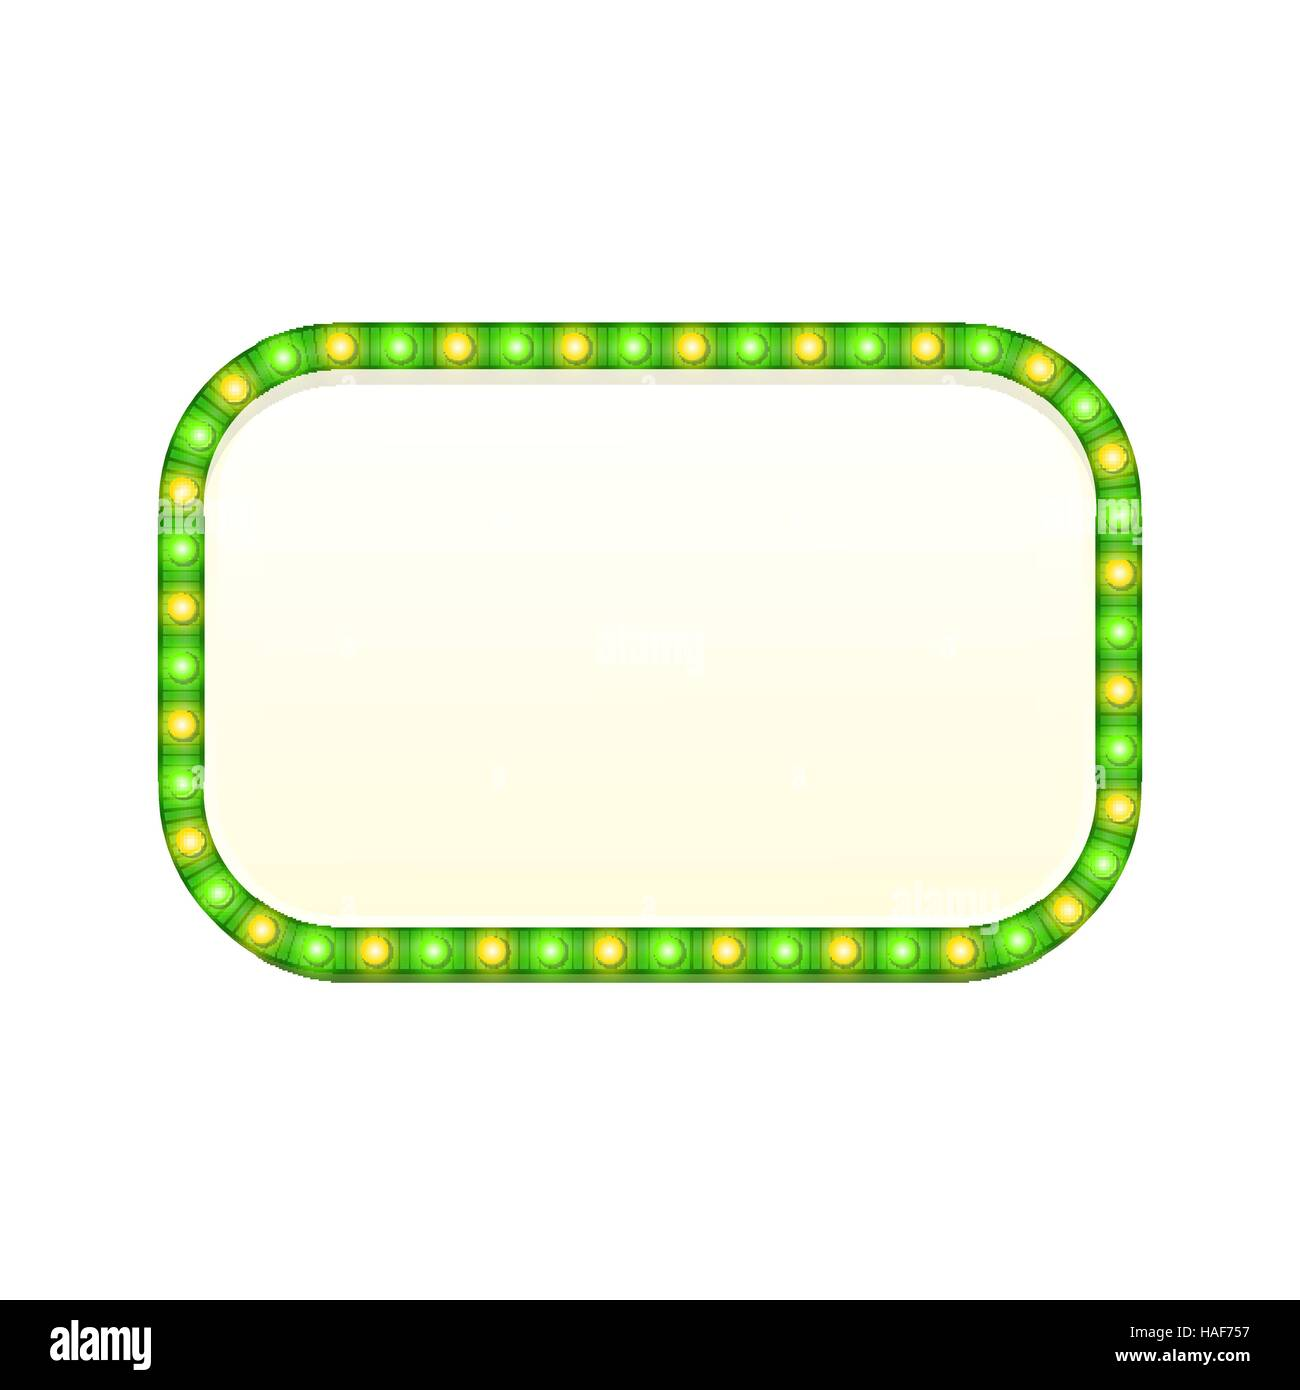 Blank 3d retro light rectangle banner with shining lights. Green rectangular sign with bulbs and bright blank space - Stock Image